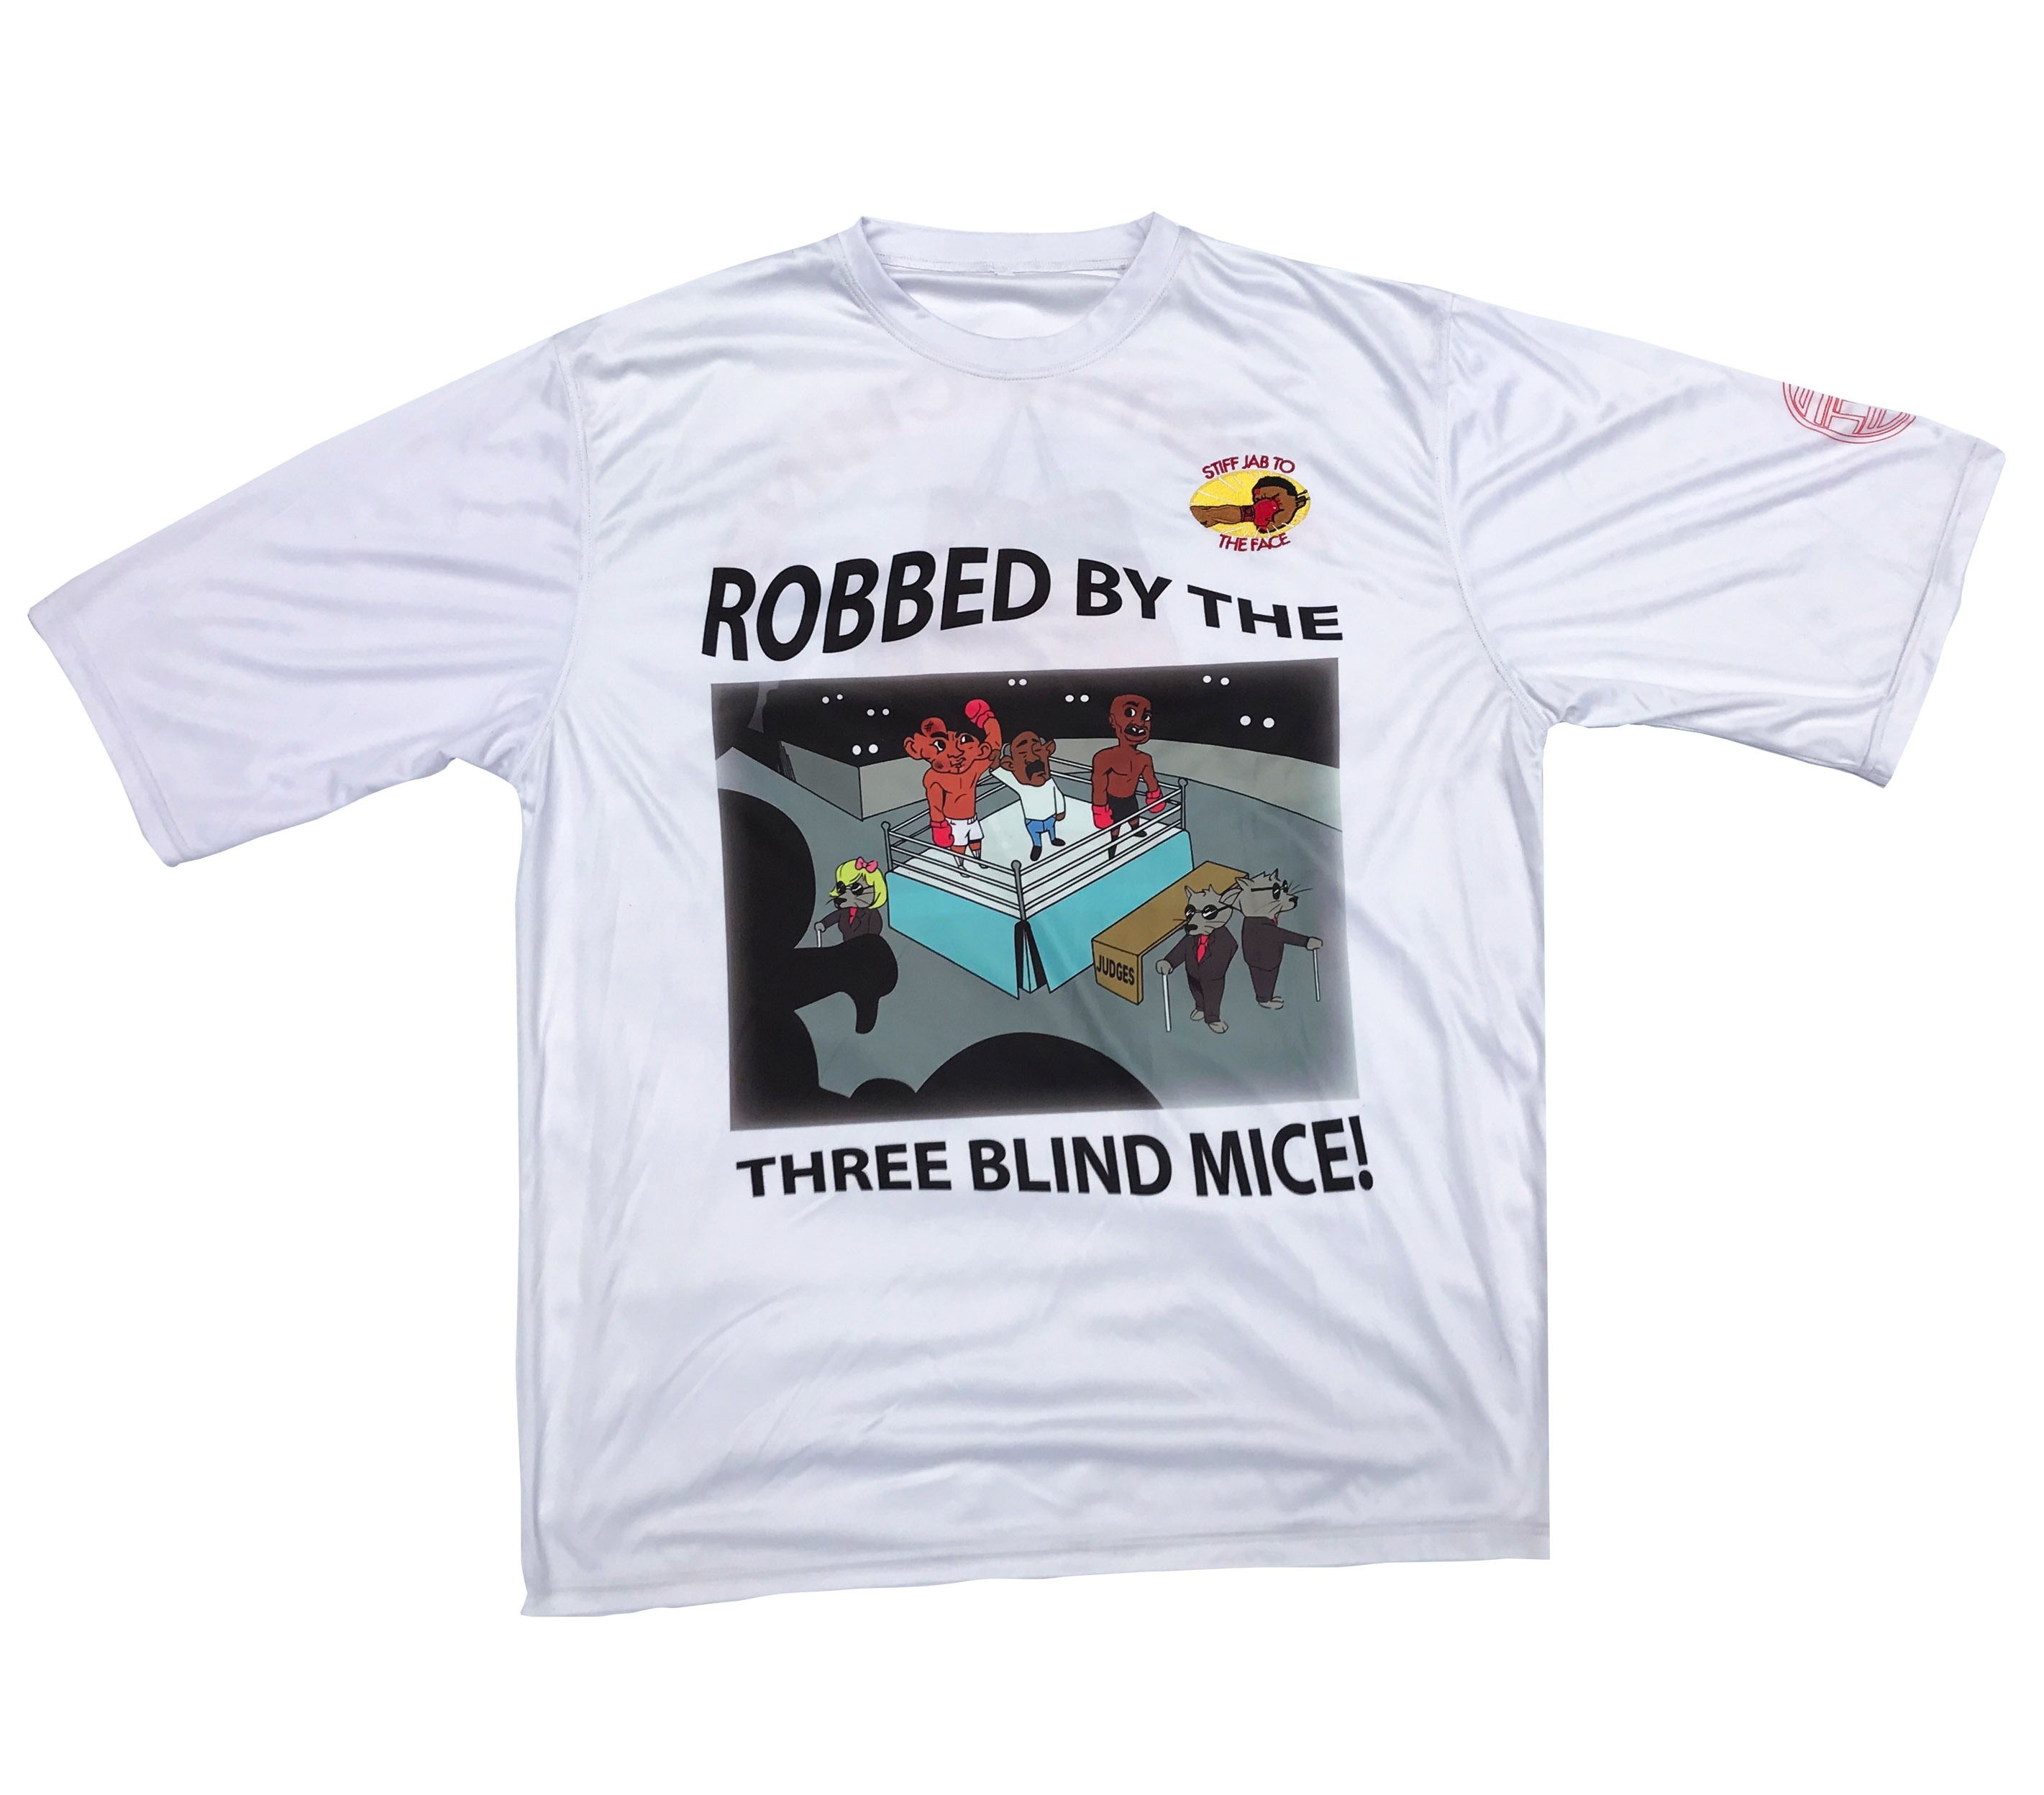 42e7fed306e3 ROBBED BY 3 BLIND MICE TEE - Stiff Jab To The Face